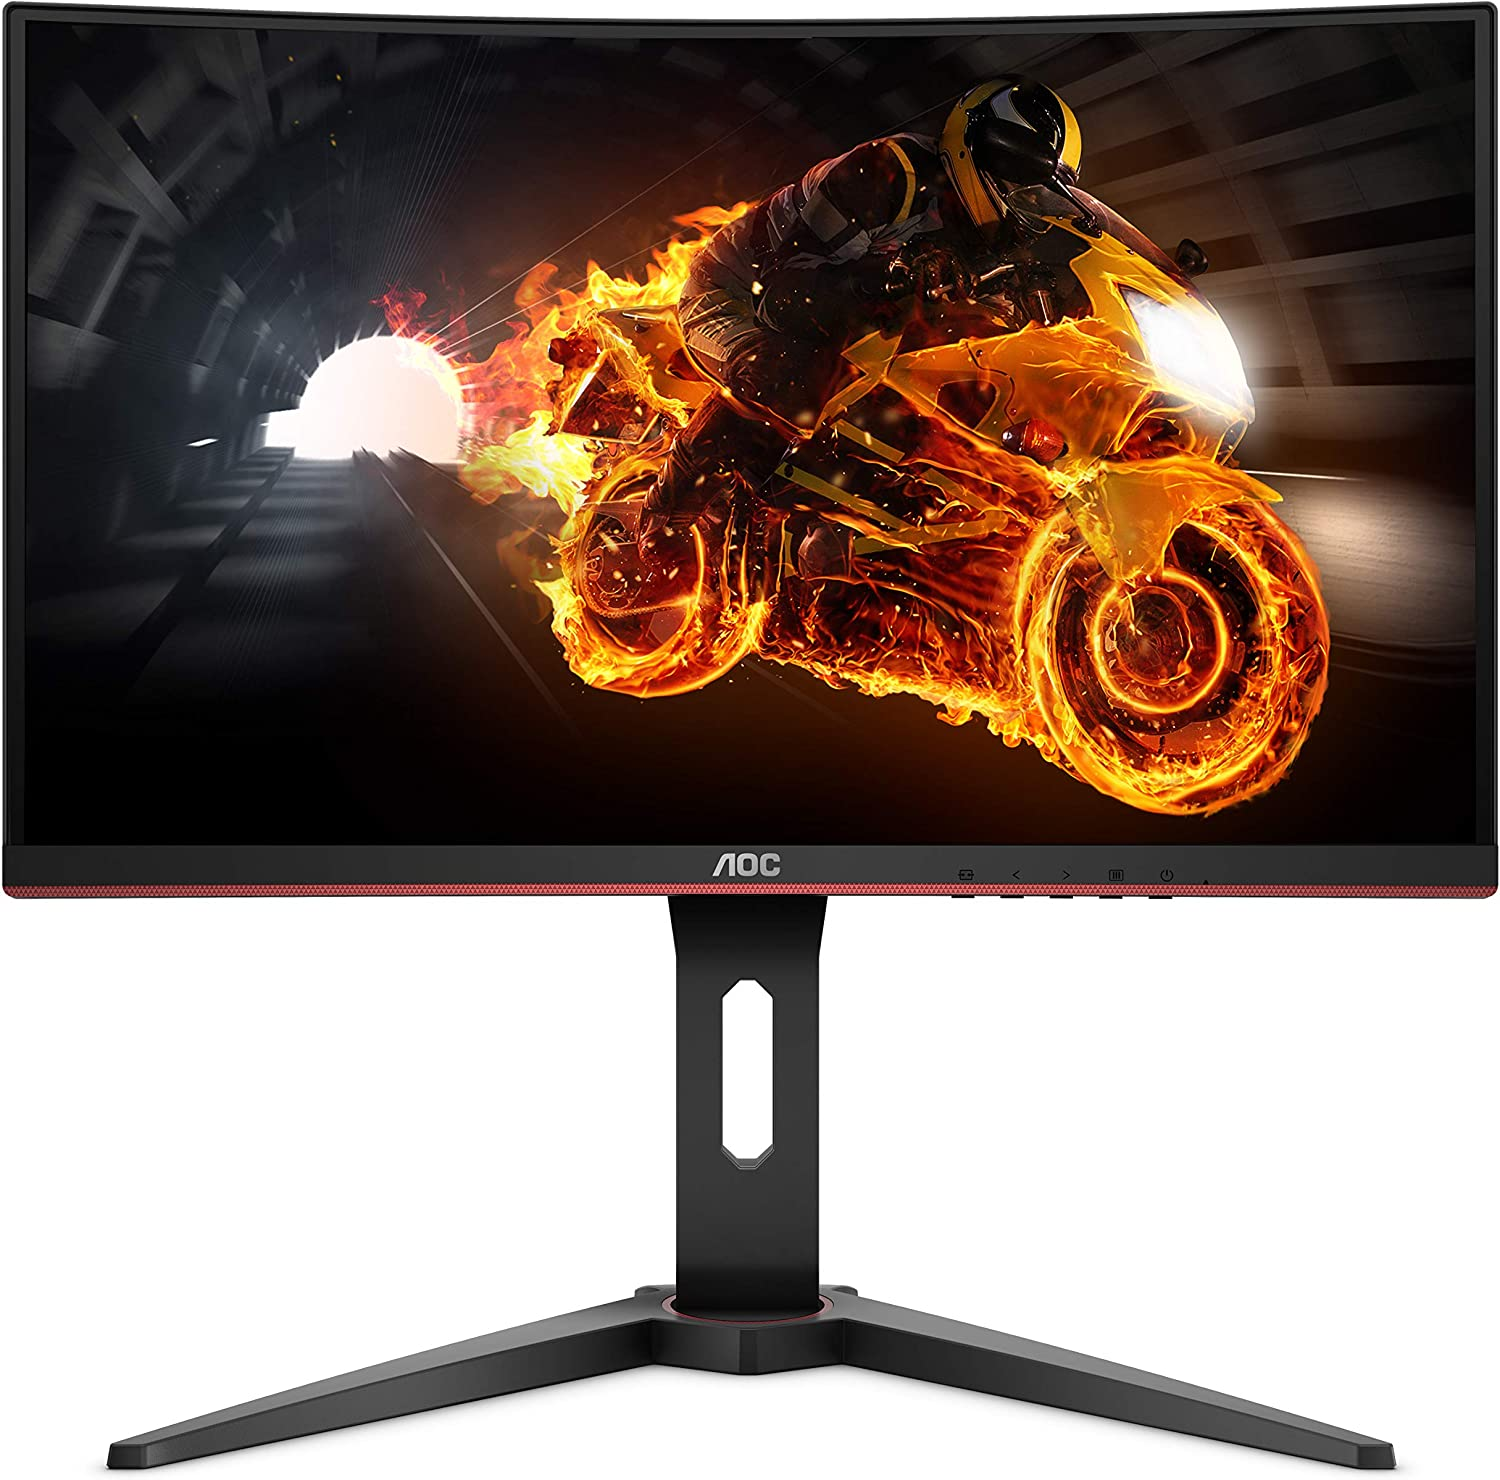 "AOC C8G8 8"" Curved VA LED FHD (8980x8080) FreeSync 844Hz Height  Adjustable Gaming Monitor. (VGA, HDMI X 8, Displayport) - Black"